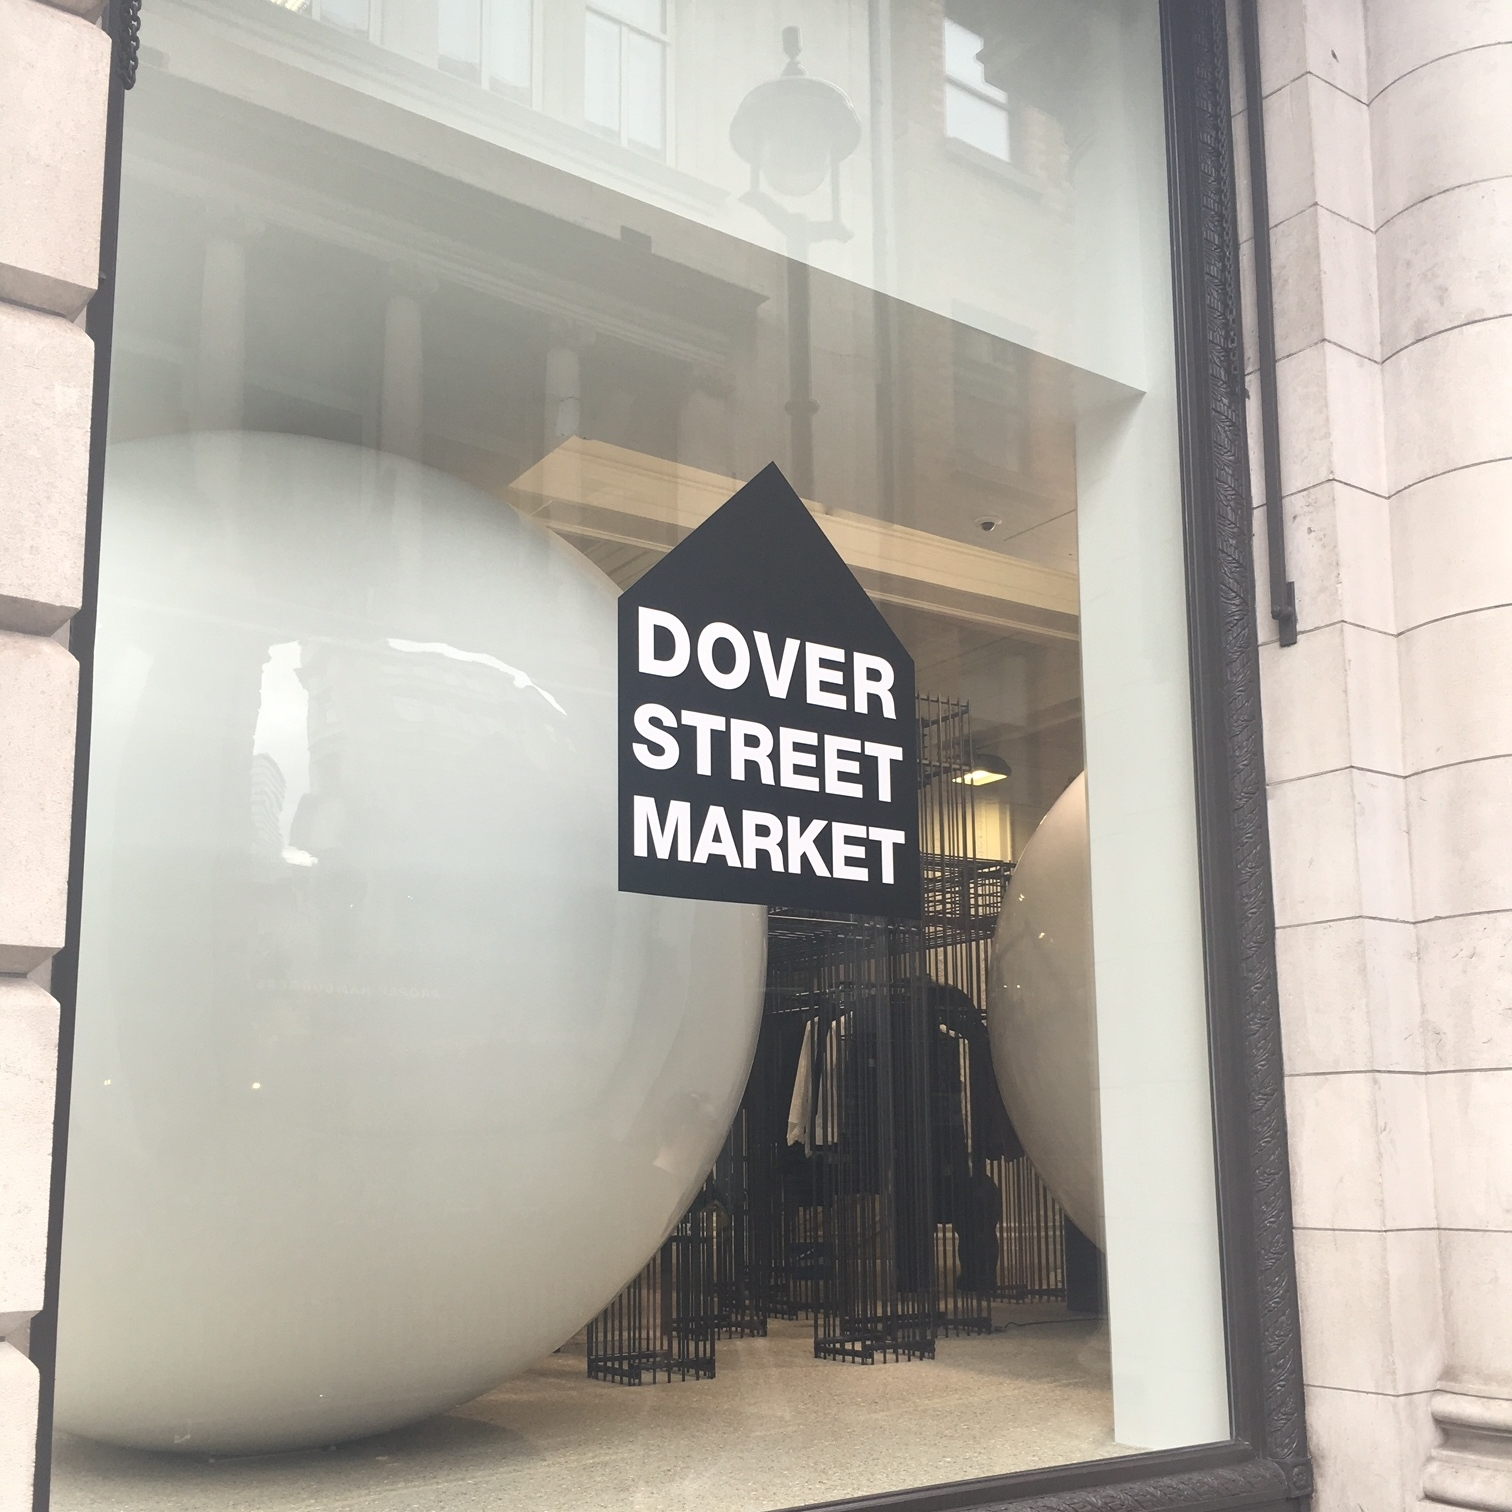 Dover Street Market, London. The Doubtful Traveller